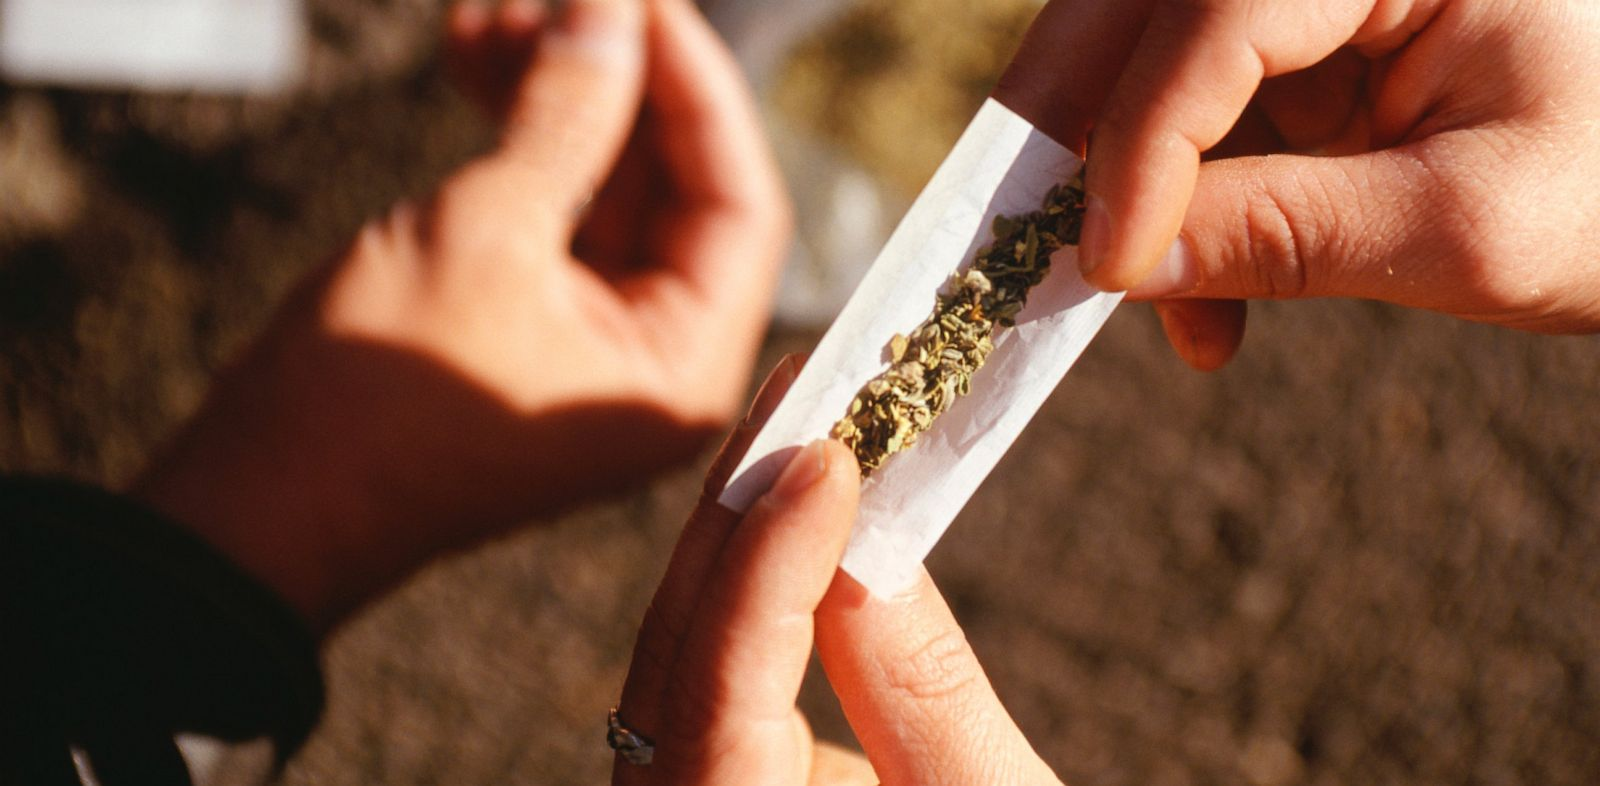 PHOTO: People rolling marijuana joints